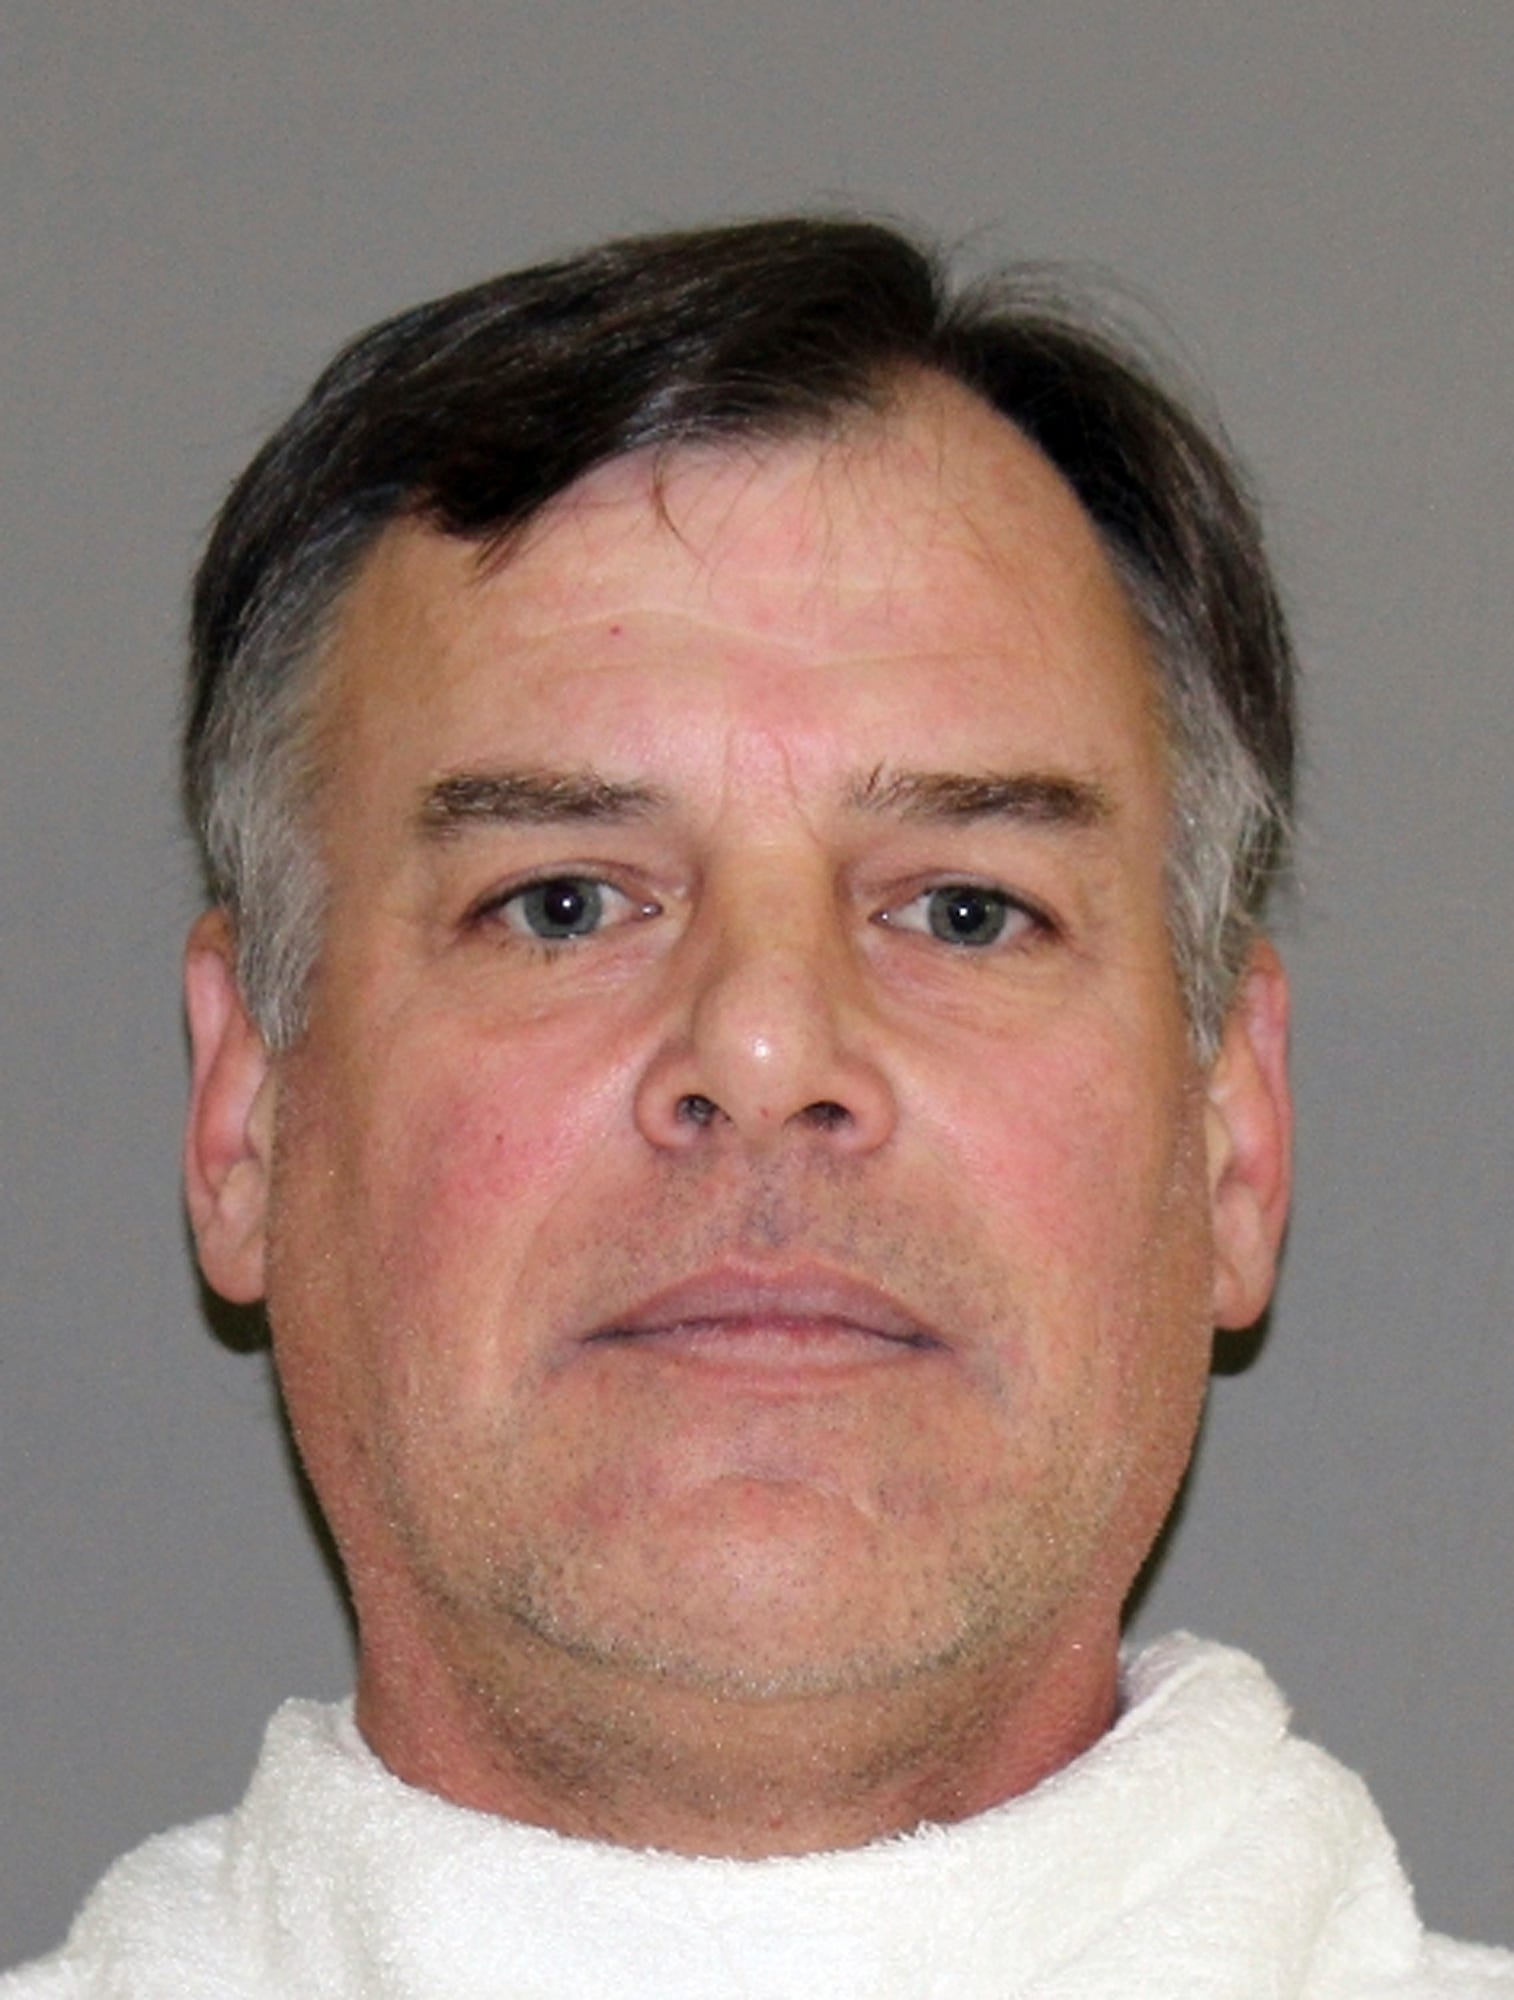 Former MLB pitcher John Wetteland maintains innocence amid sex abuse charges